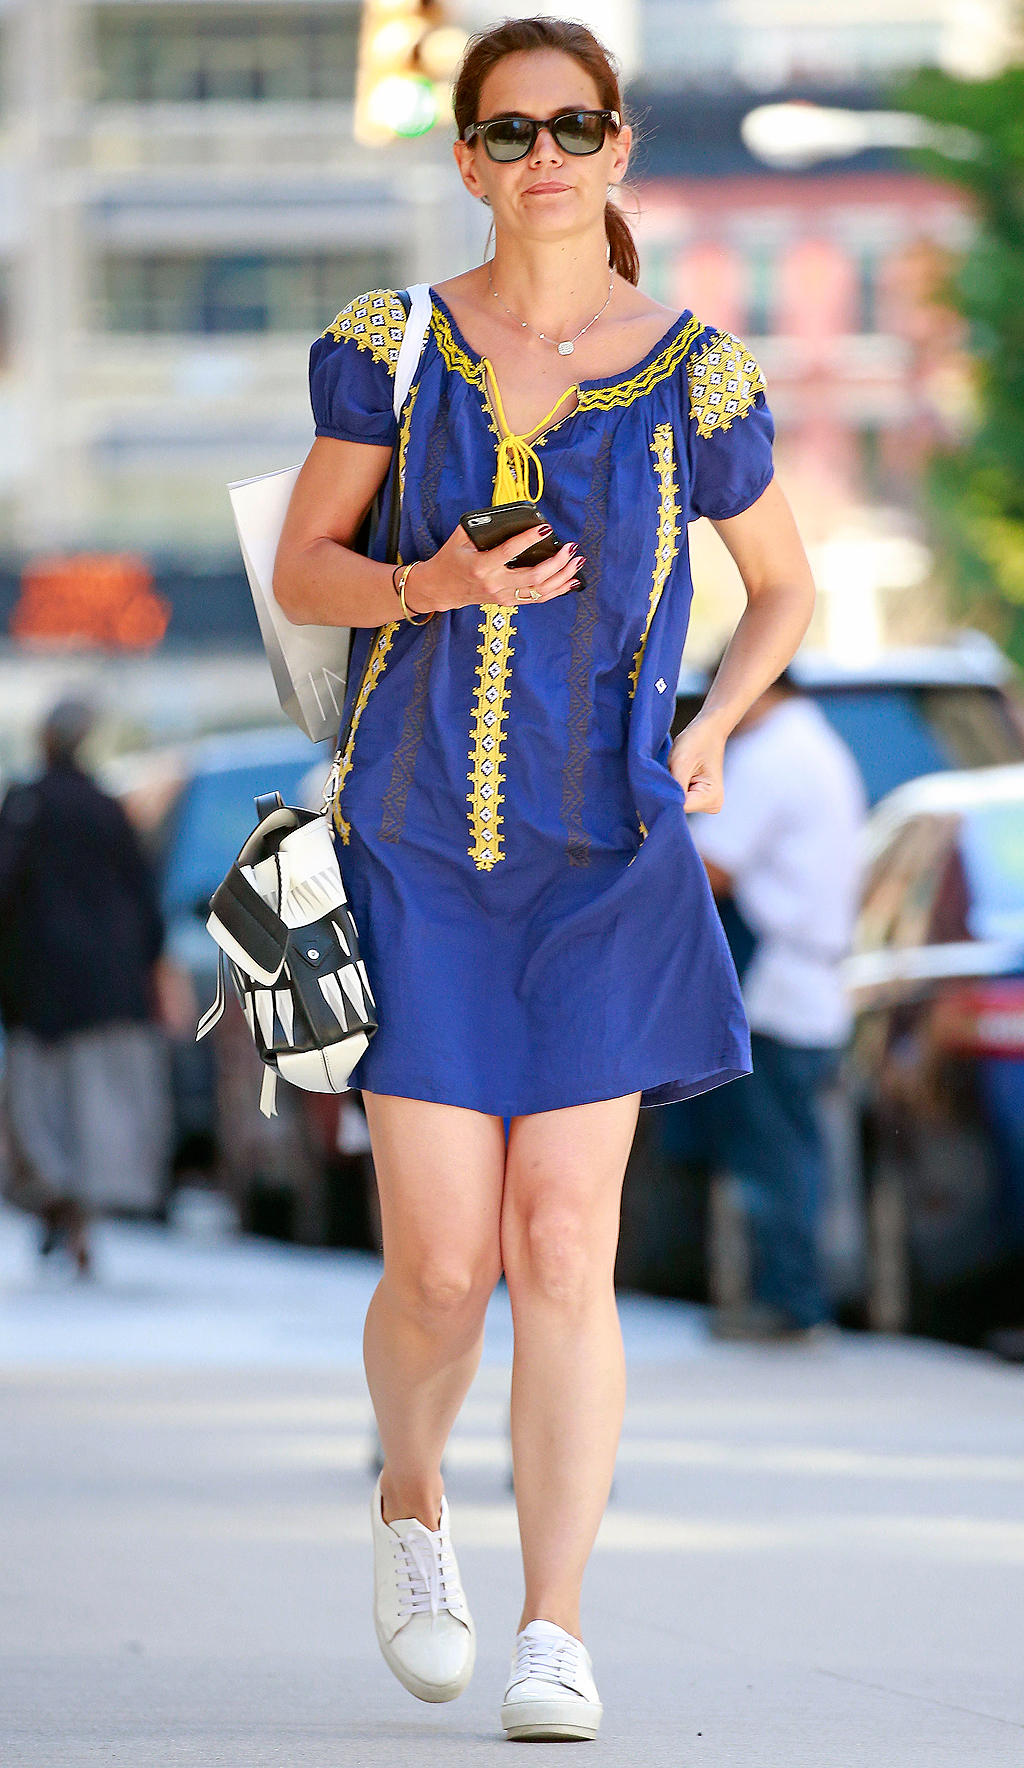 EXCLUSIVE: Katie Holmes seen texting on her phone and seen carrying an Intermix shopping bag in Tribeca, New York City